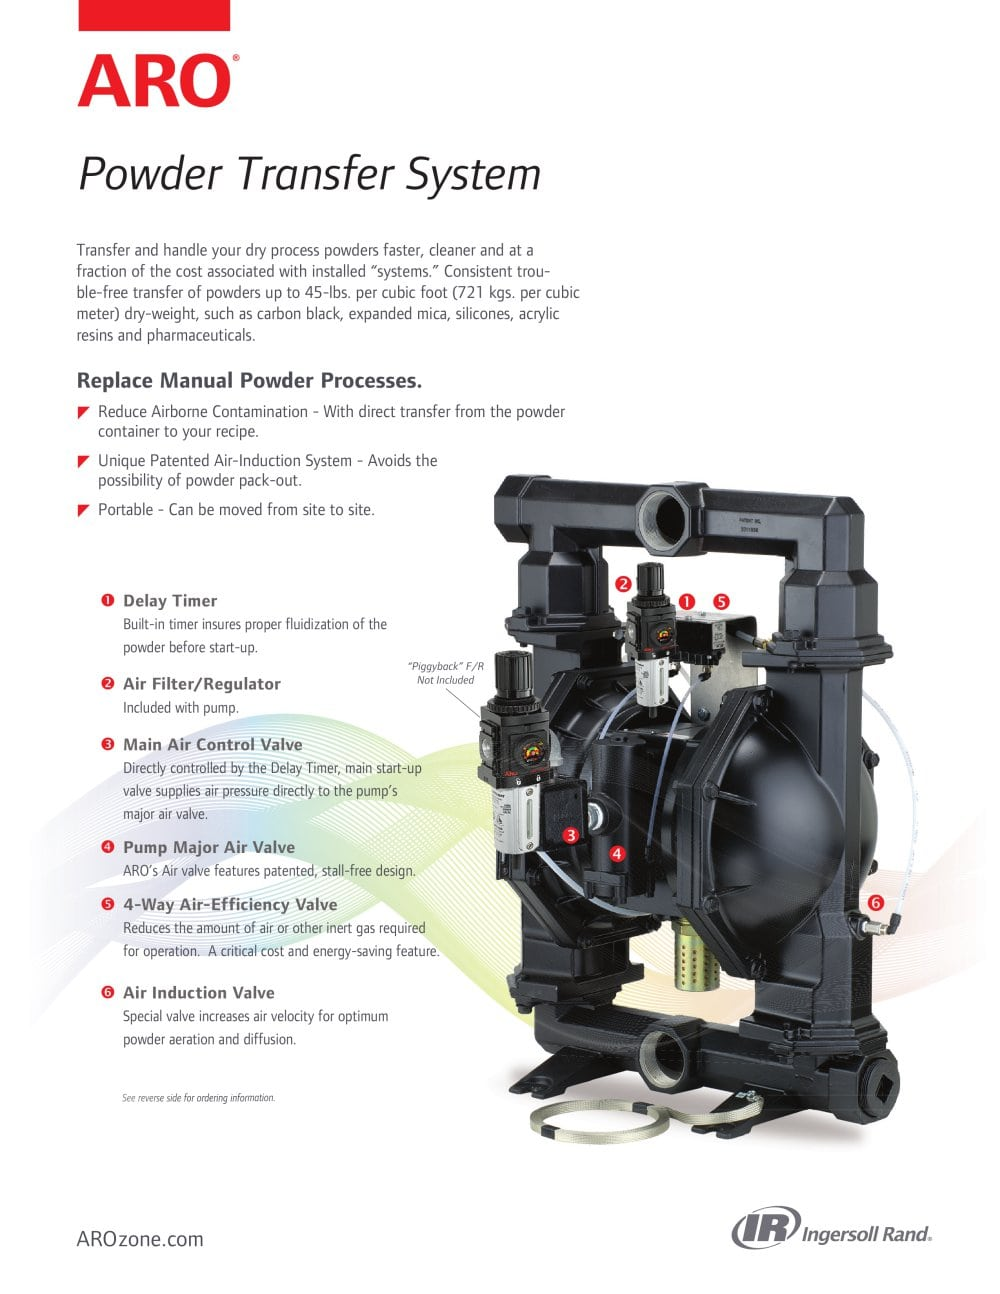 Aro powder transfer system aro ingersoll rand pdf catalogue aro powder transfer system 1 2 pages ccuart Image collections